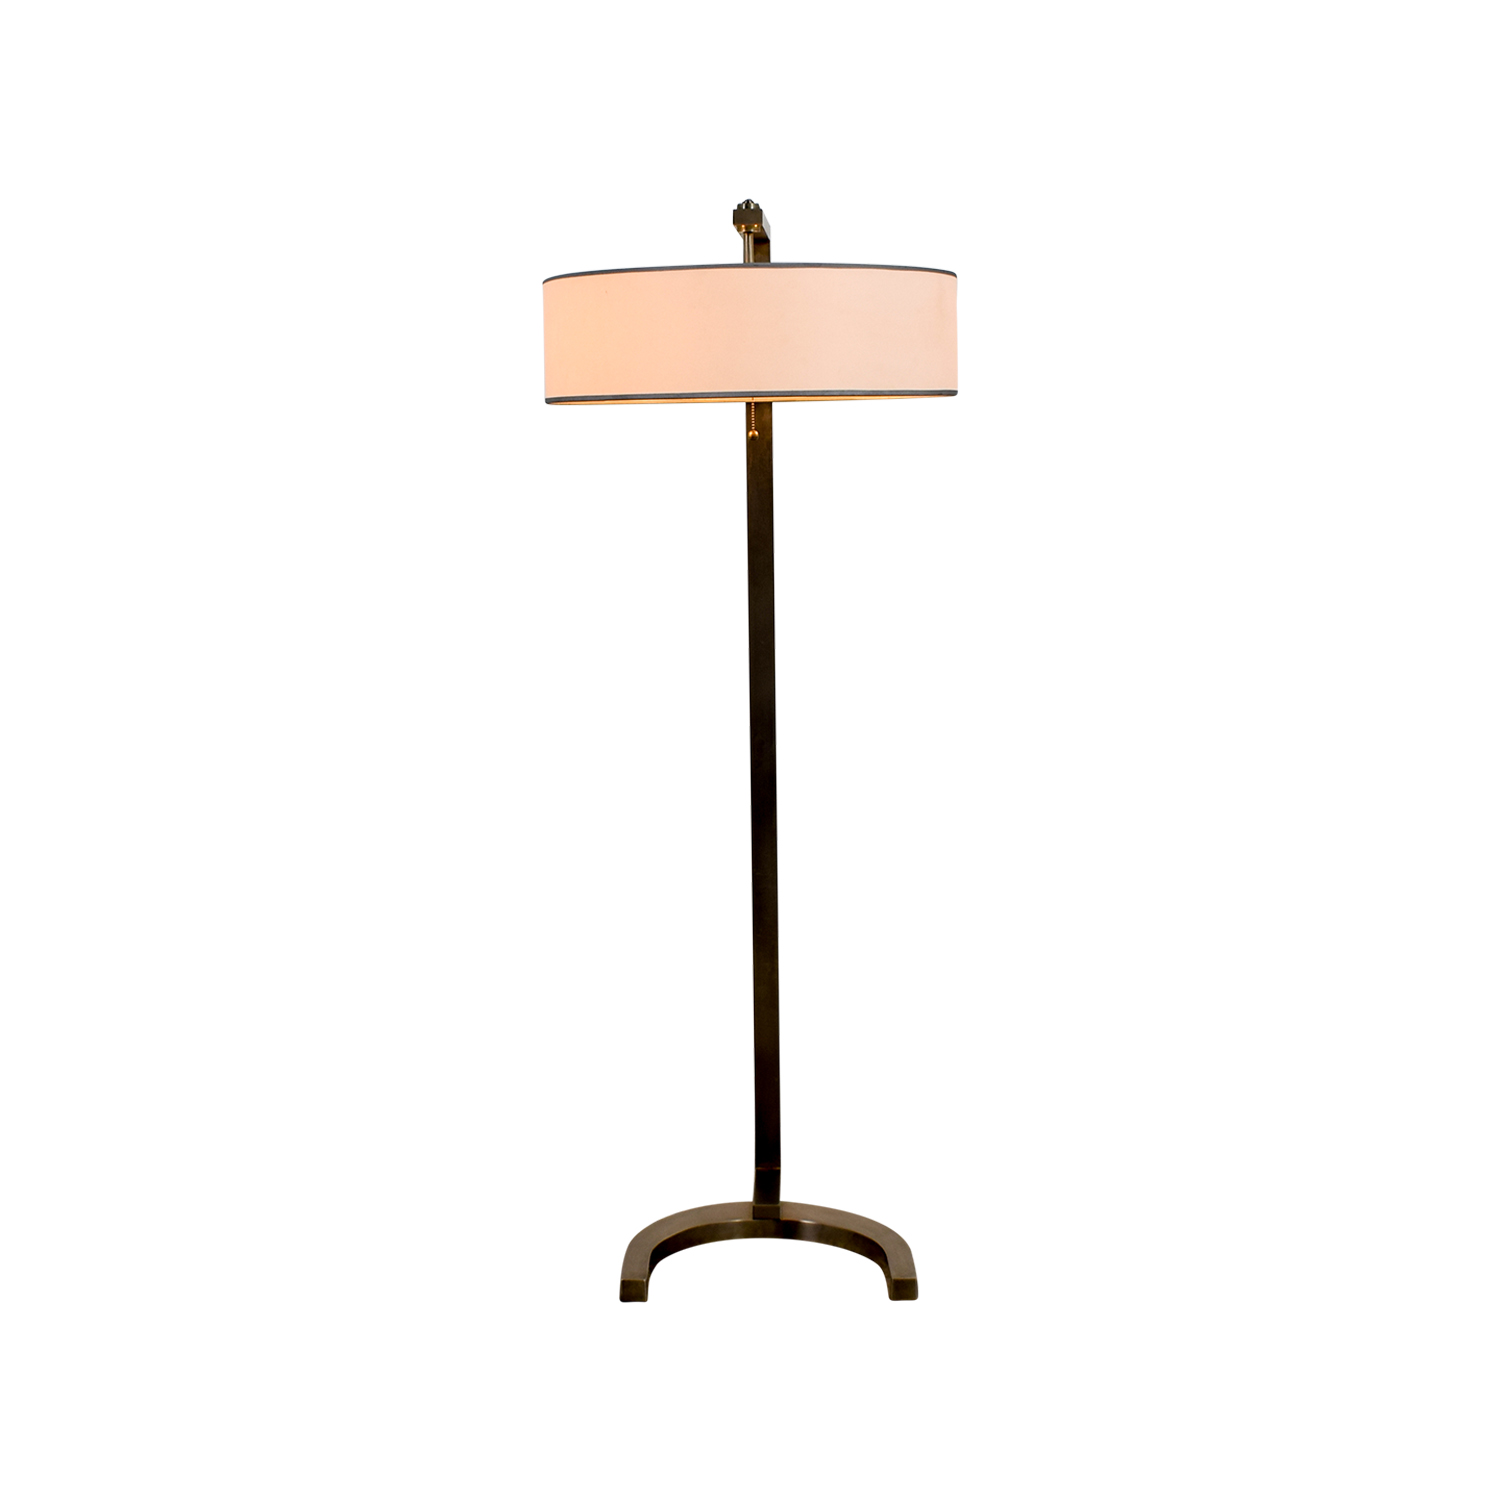 Thomas OBrien for Visual Comfort Visual Comfort Hudson Floor Lamp by Thomas OBrien second hand